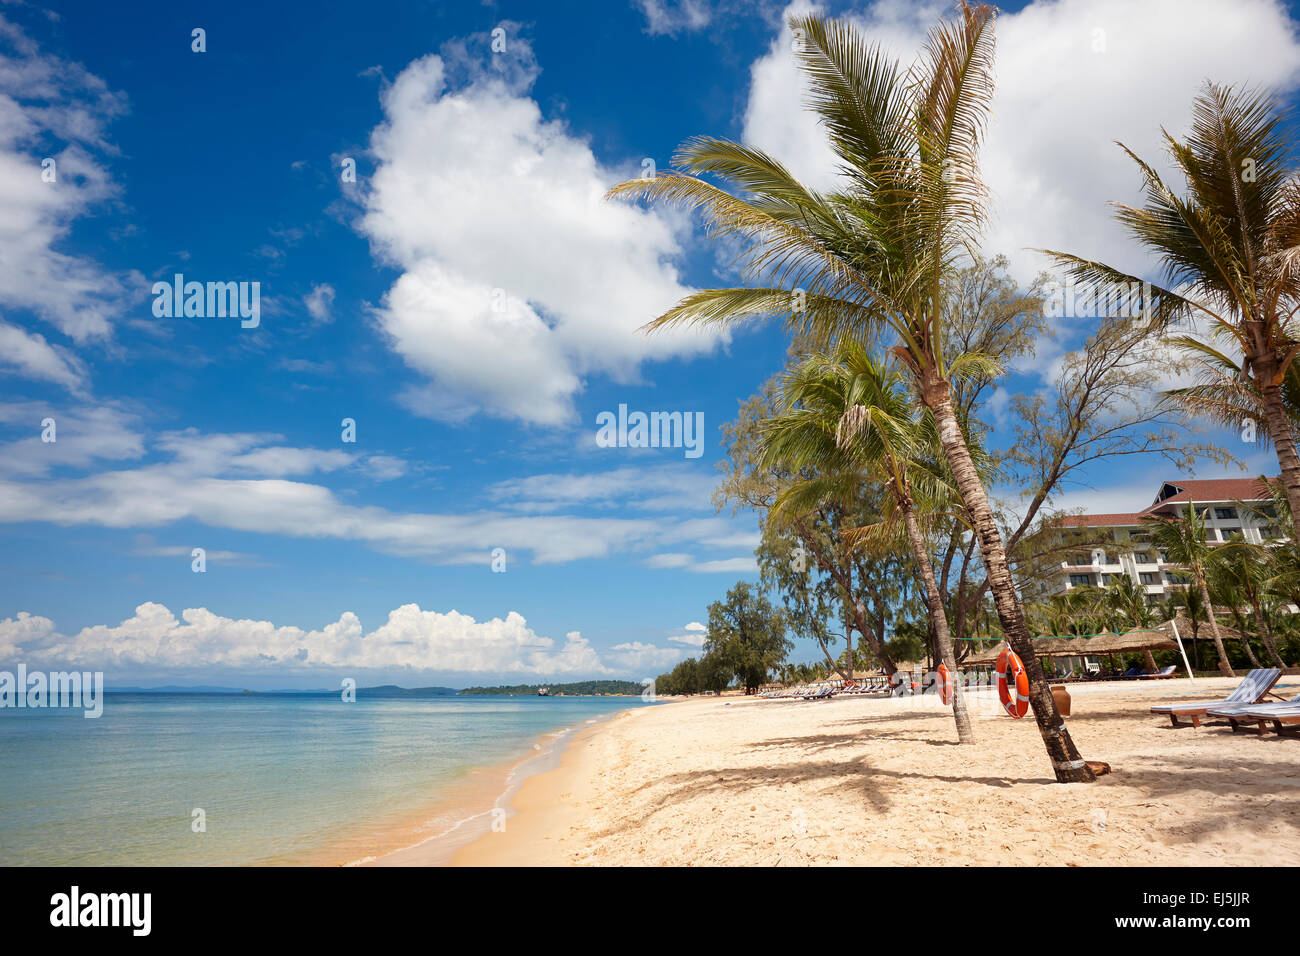 Clean sandy beach at Vinpearl Resort, Phu Quoc island, Vietnam. - Stock Image